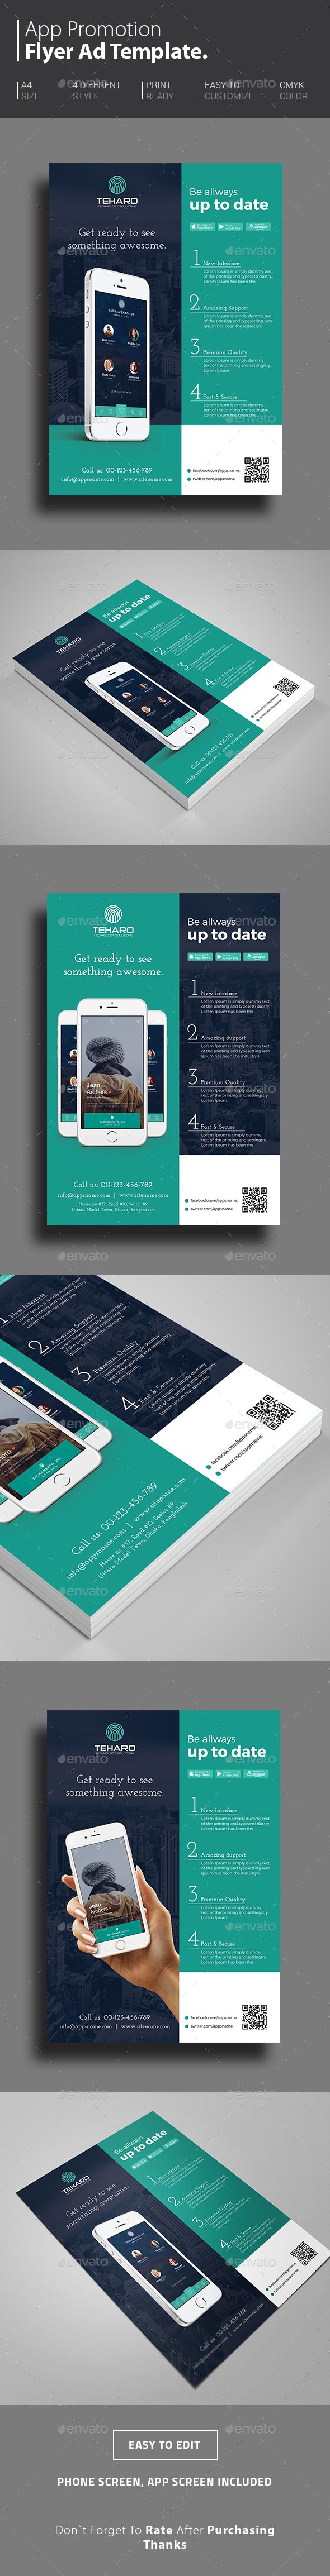 Best 25+ Templates for flyers ideas that you will like on Pinterest